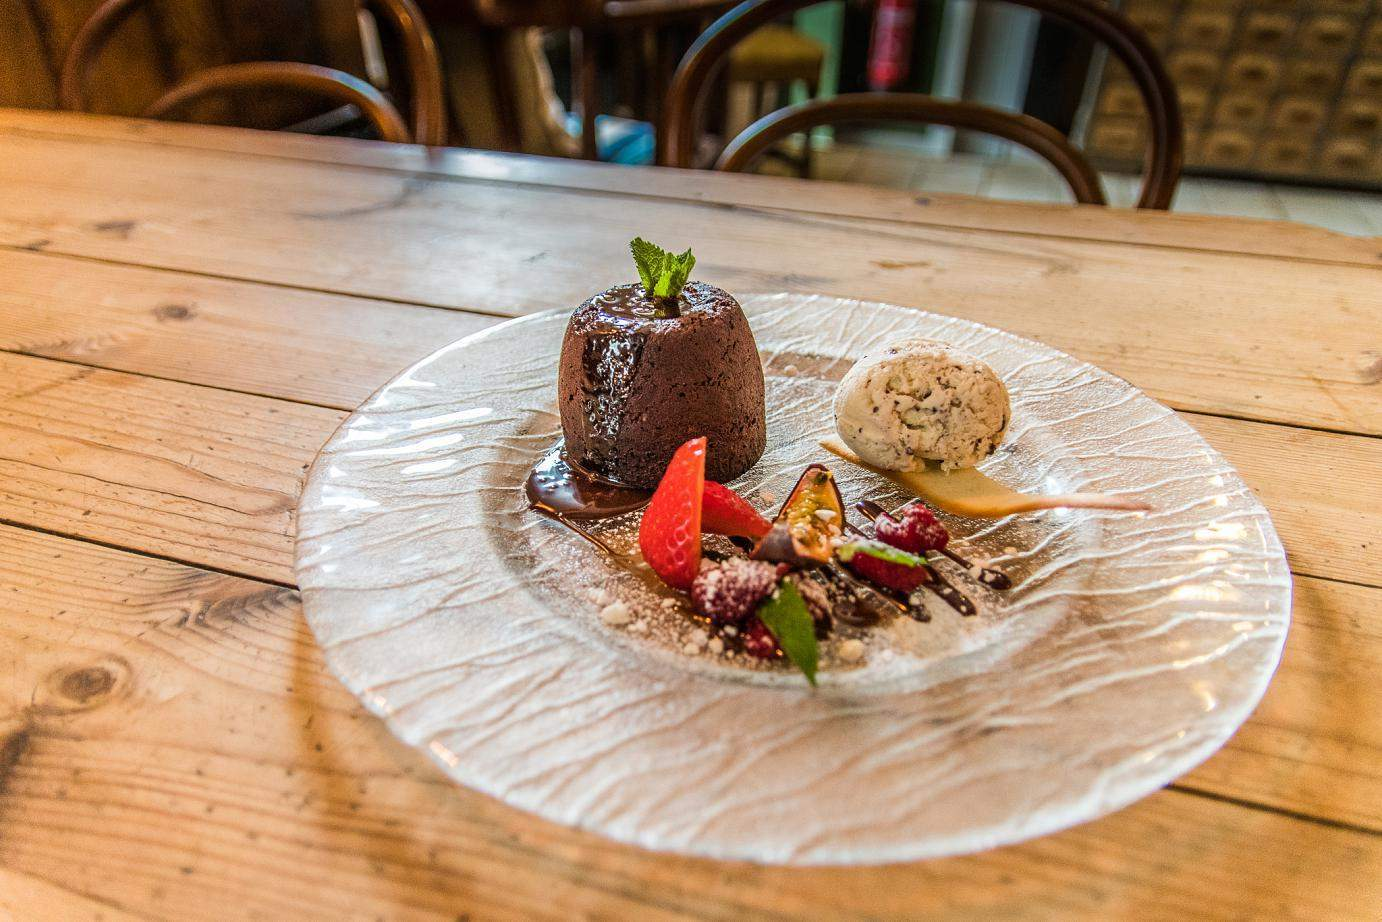 Chocolate desert